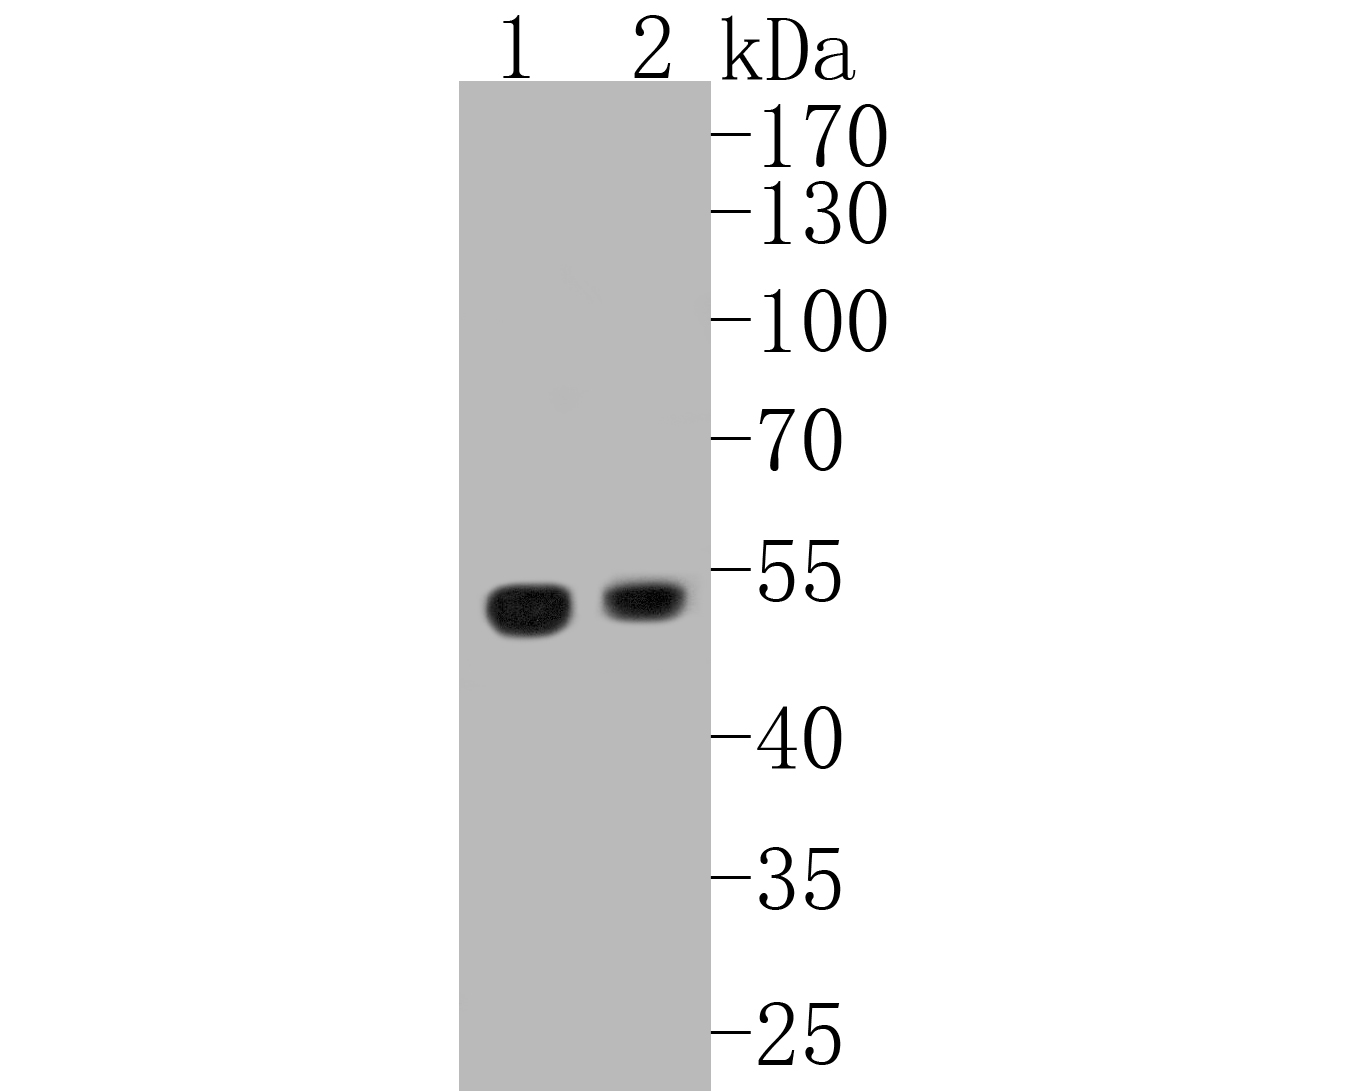 Western blot analysis of UBA3 on different lysates. Proteins were transferred to a PVDF membrane and blocked with 5% BSA in PBS for 1 hour at room temperature. The primary antibody (EM1901-66, 1/500) was used in 5% BSA at room temperature for 2 hours. Goat Anti-Mouse IgG - HRP Secondary Antibody (HA1006) at 1:5,000 dilution was used for 1 hour at room temperature.<br /> Positive control: <br /> Lane 1: 293T cell lysate<br /> Lane 2: HepG2 cell lysate